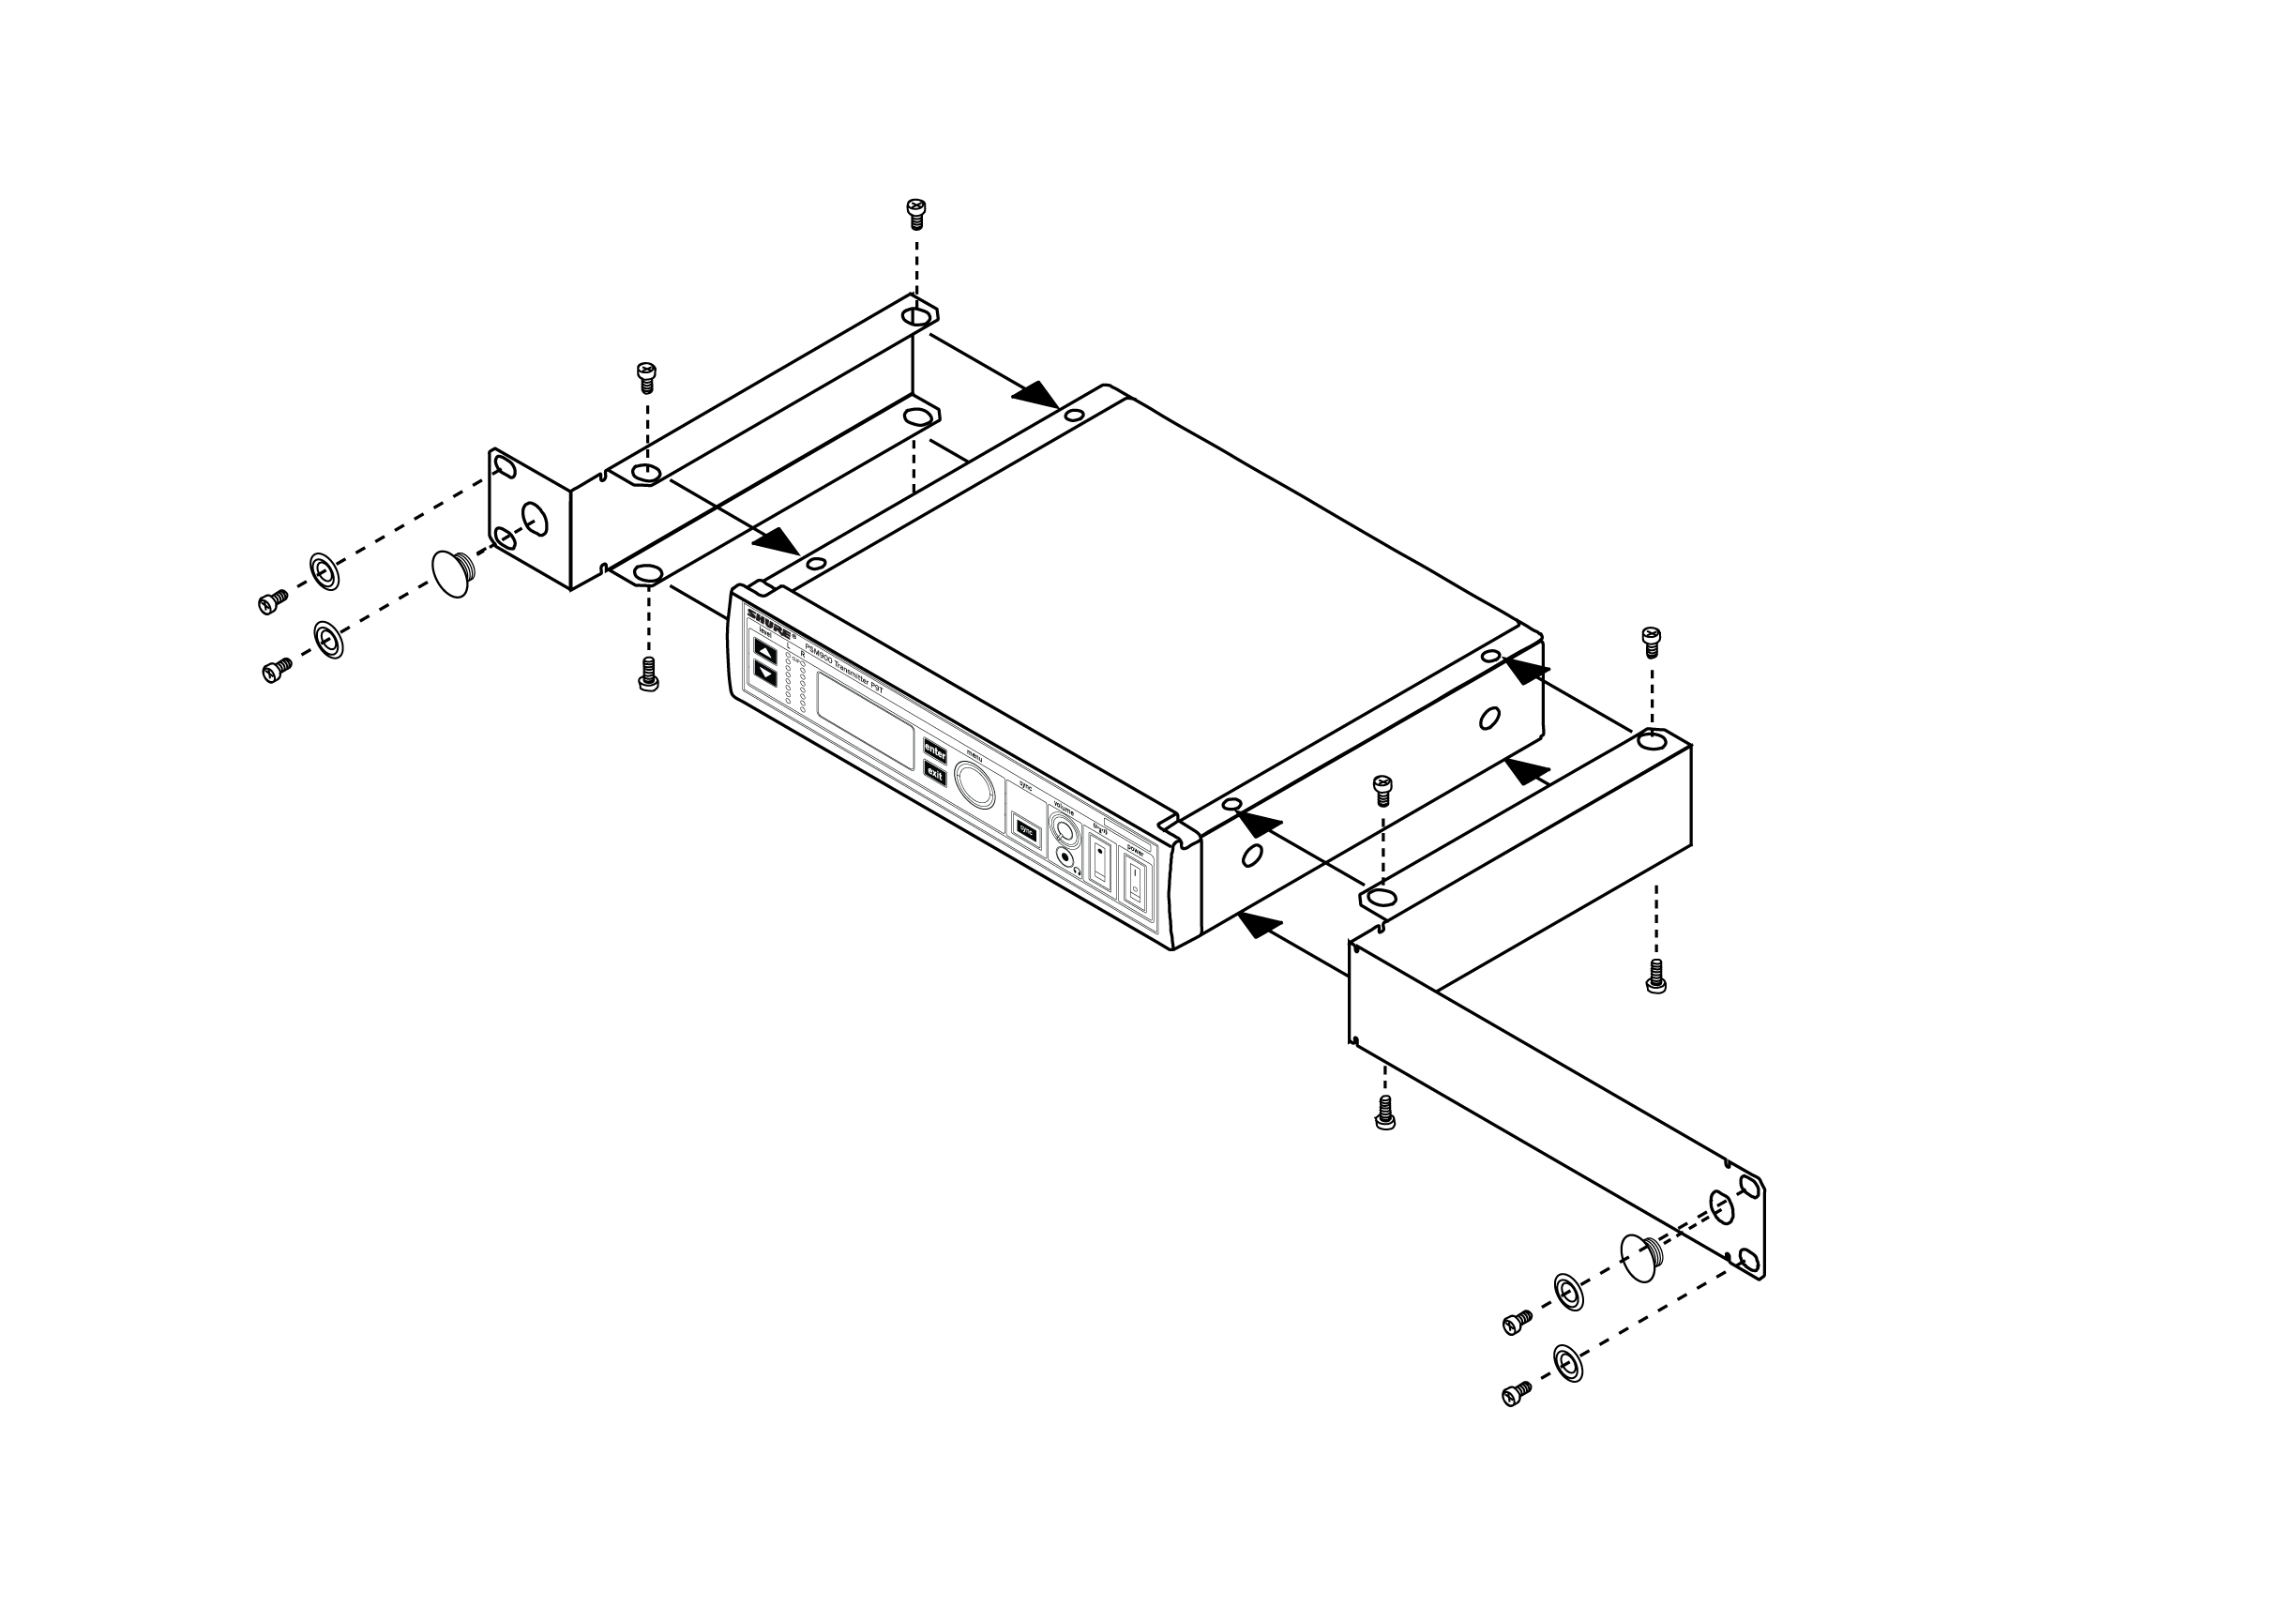 A diagram showing how to attach the rackmount hardware to a single receiver.